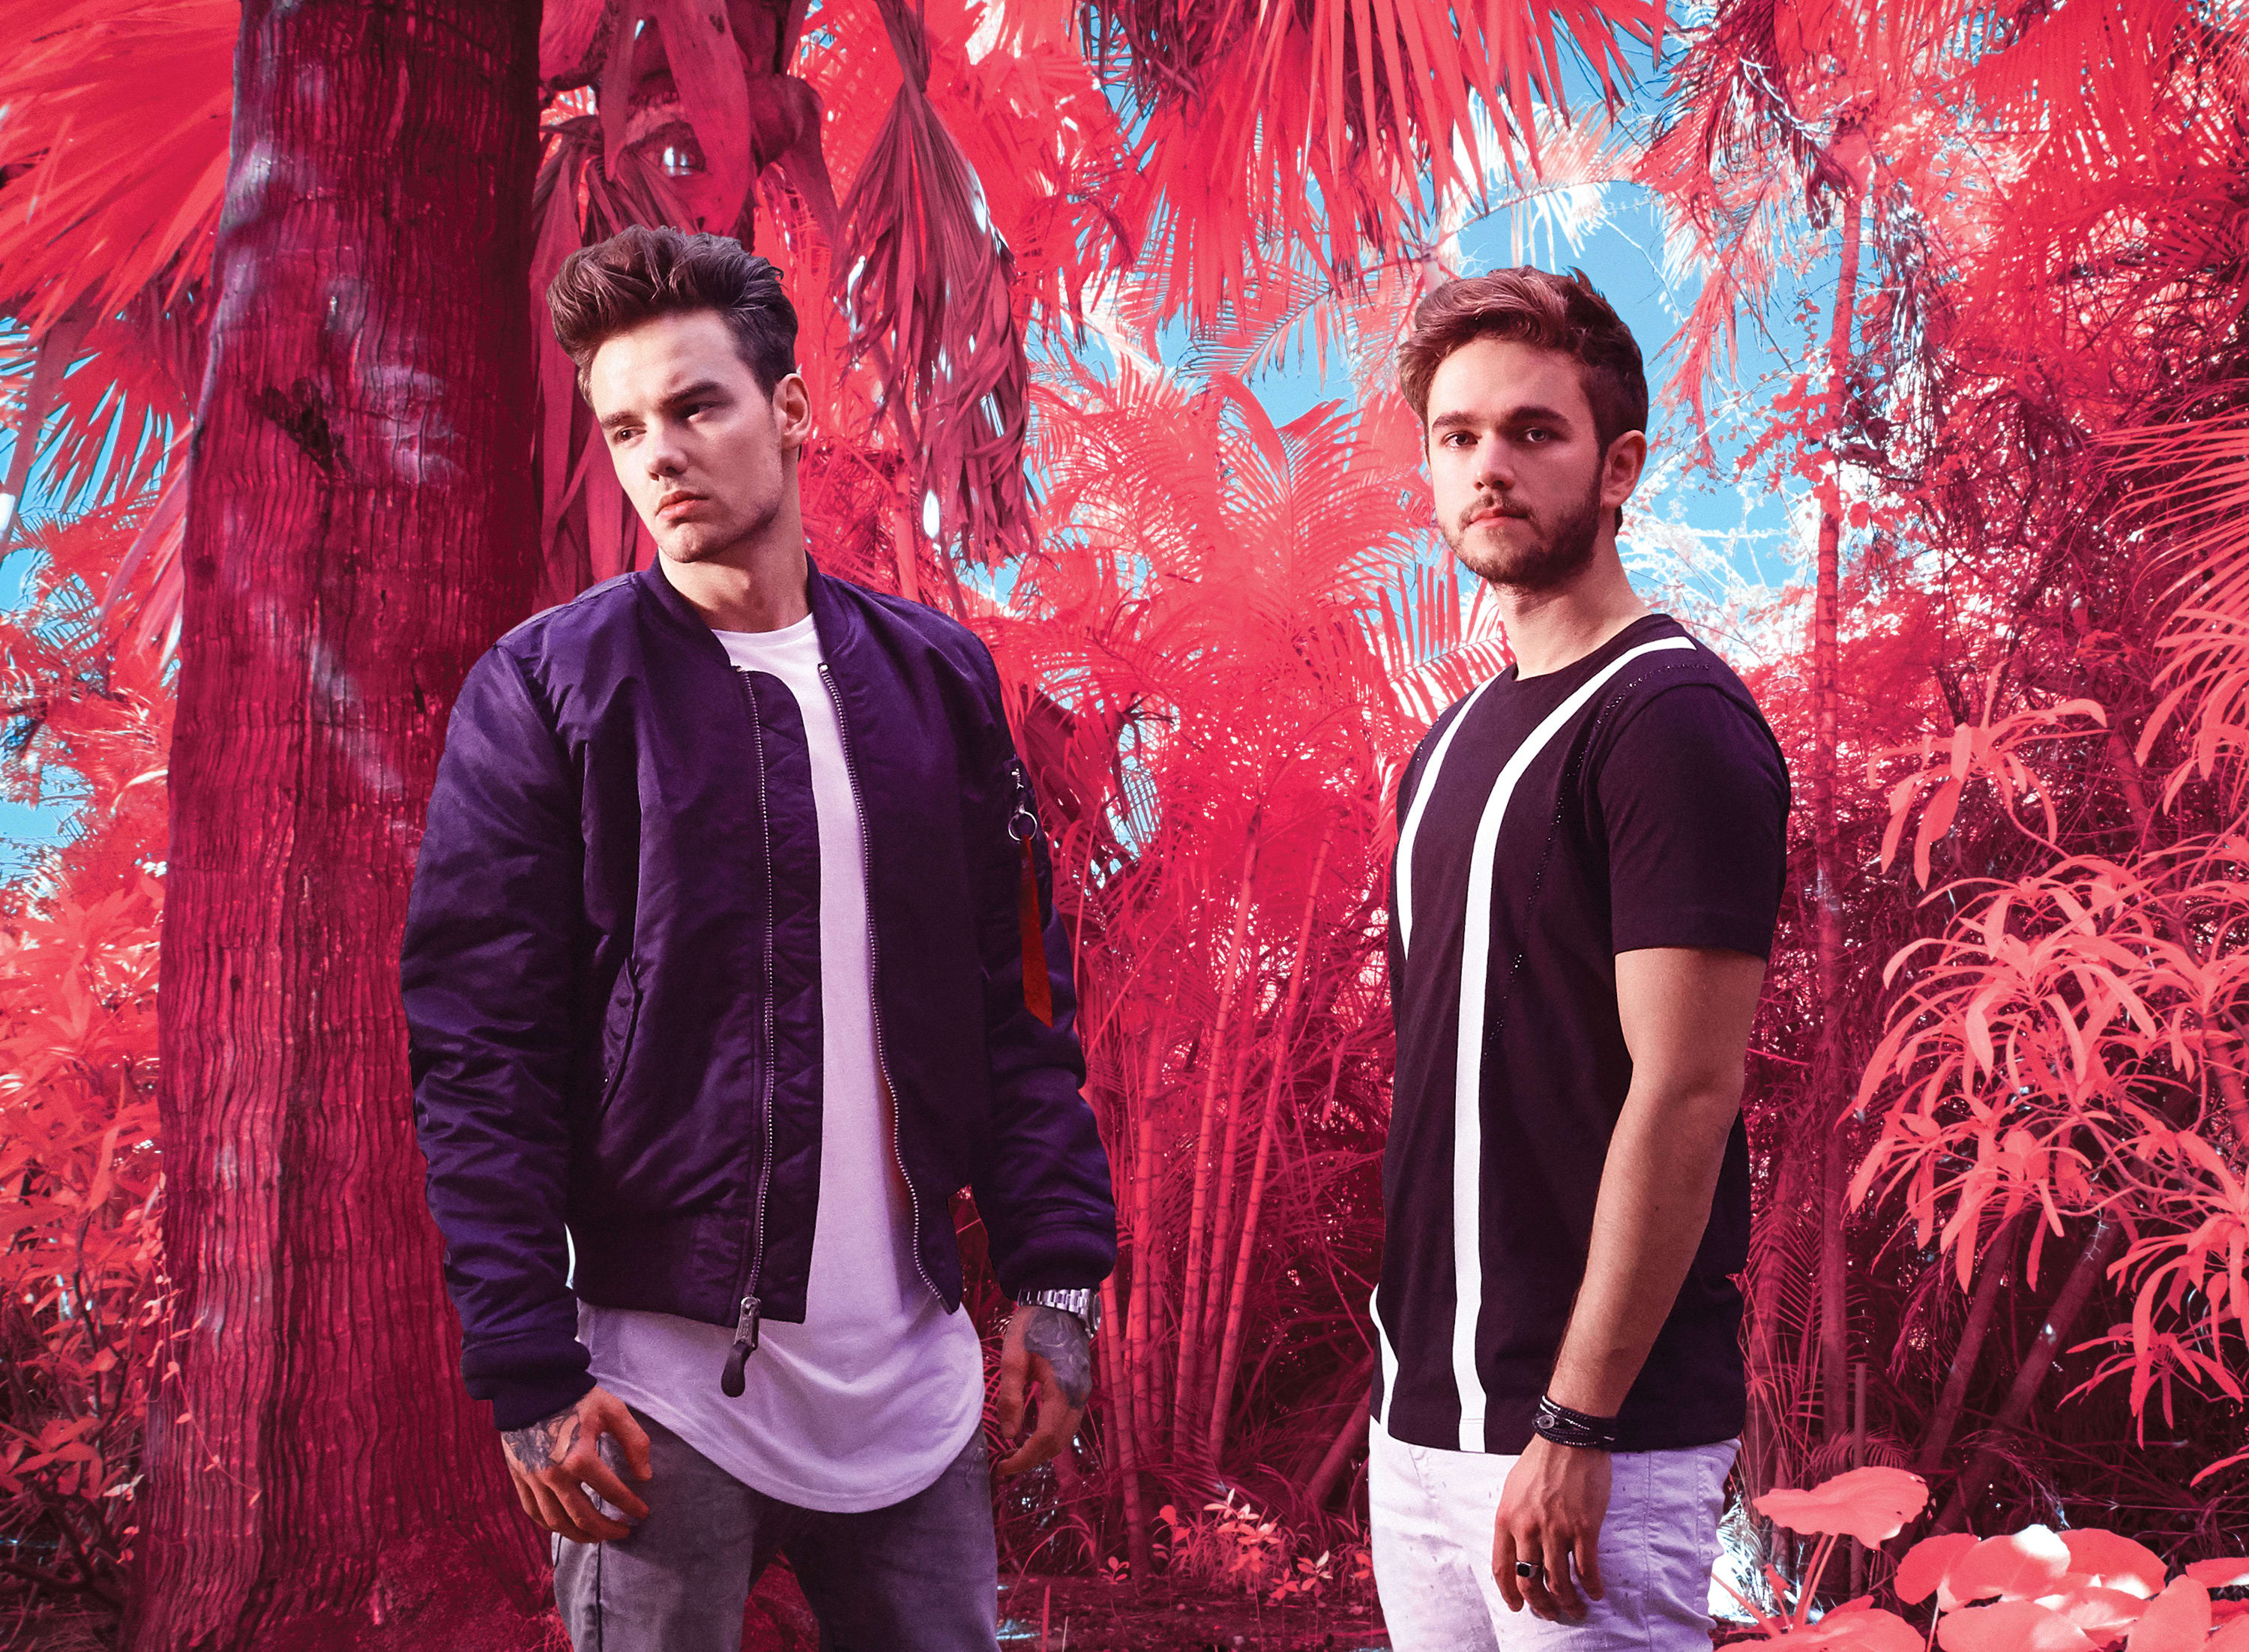 LISTEN Zedd releases new single featuring Liam Payne